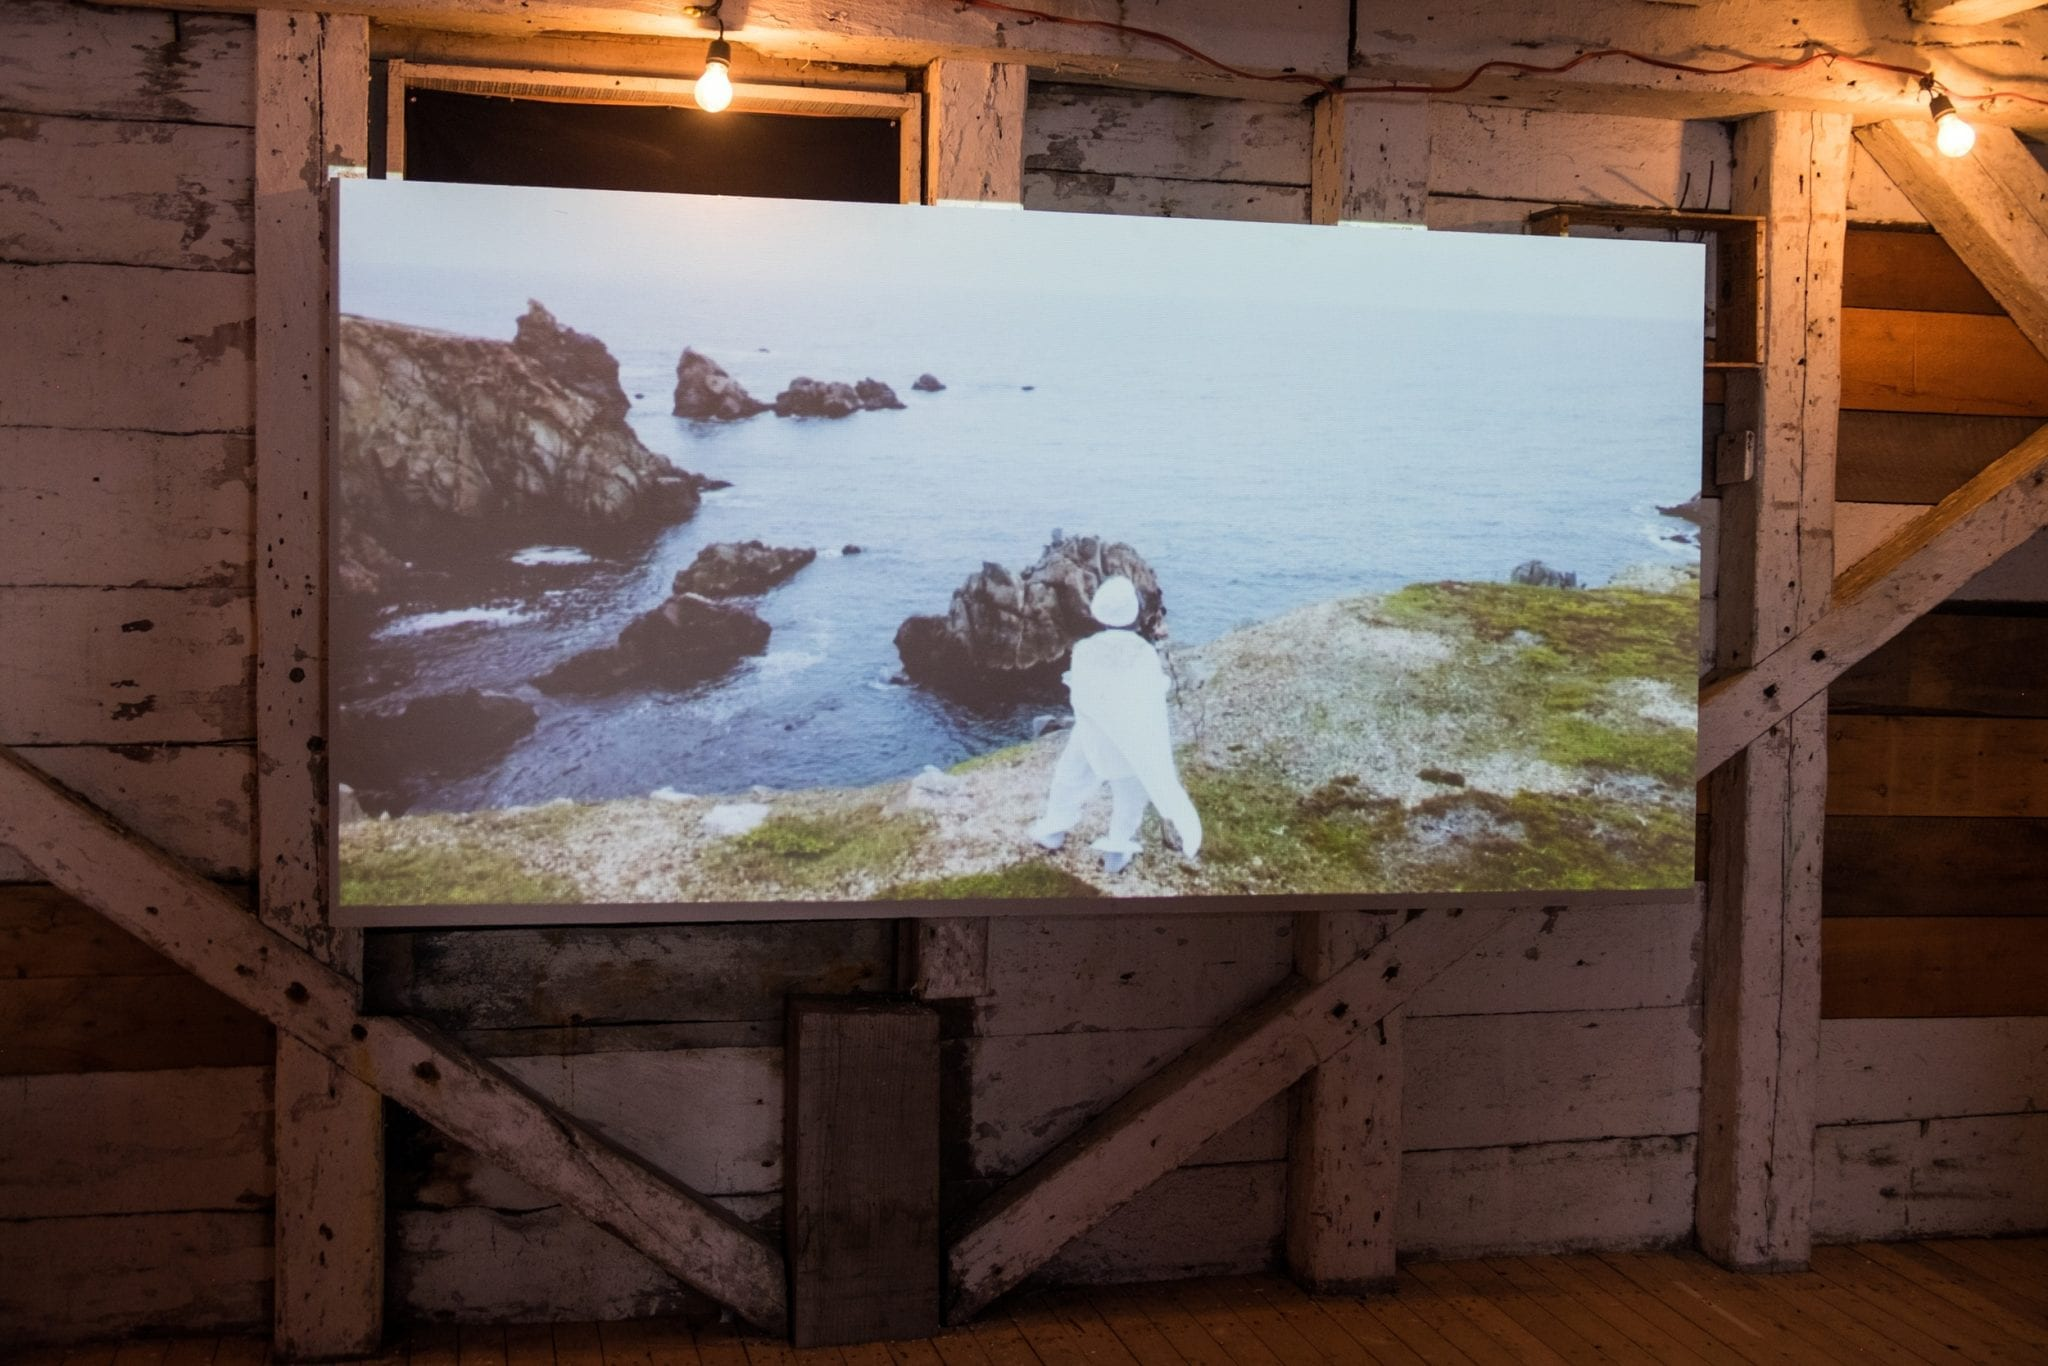 A screen with a woman in white African costume and a turban, standing on the edge of a cliff in Newfoundland.